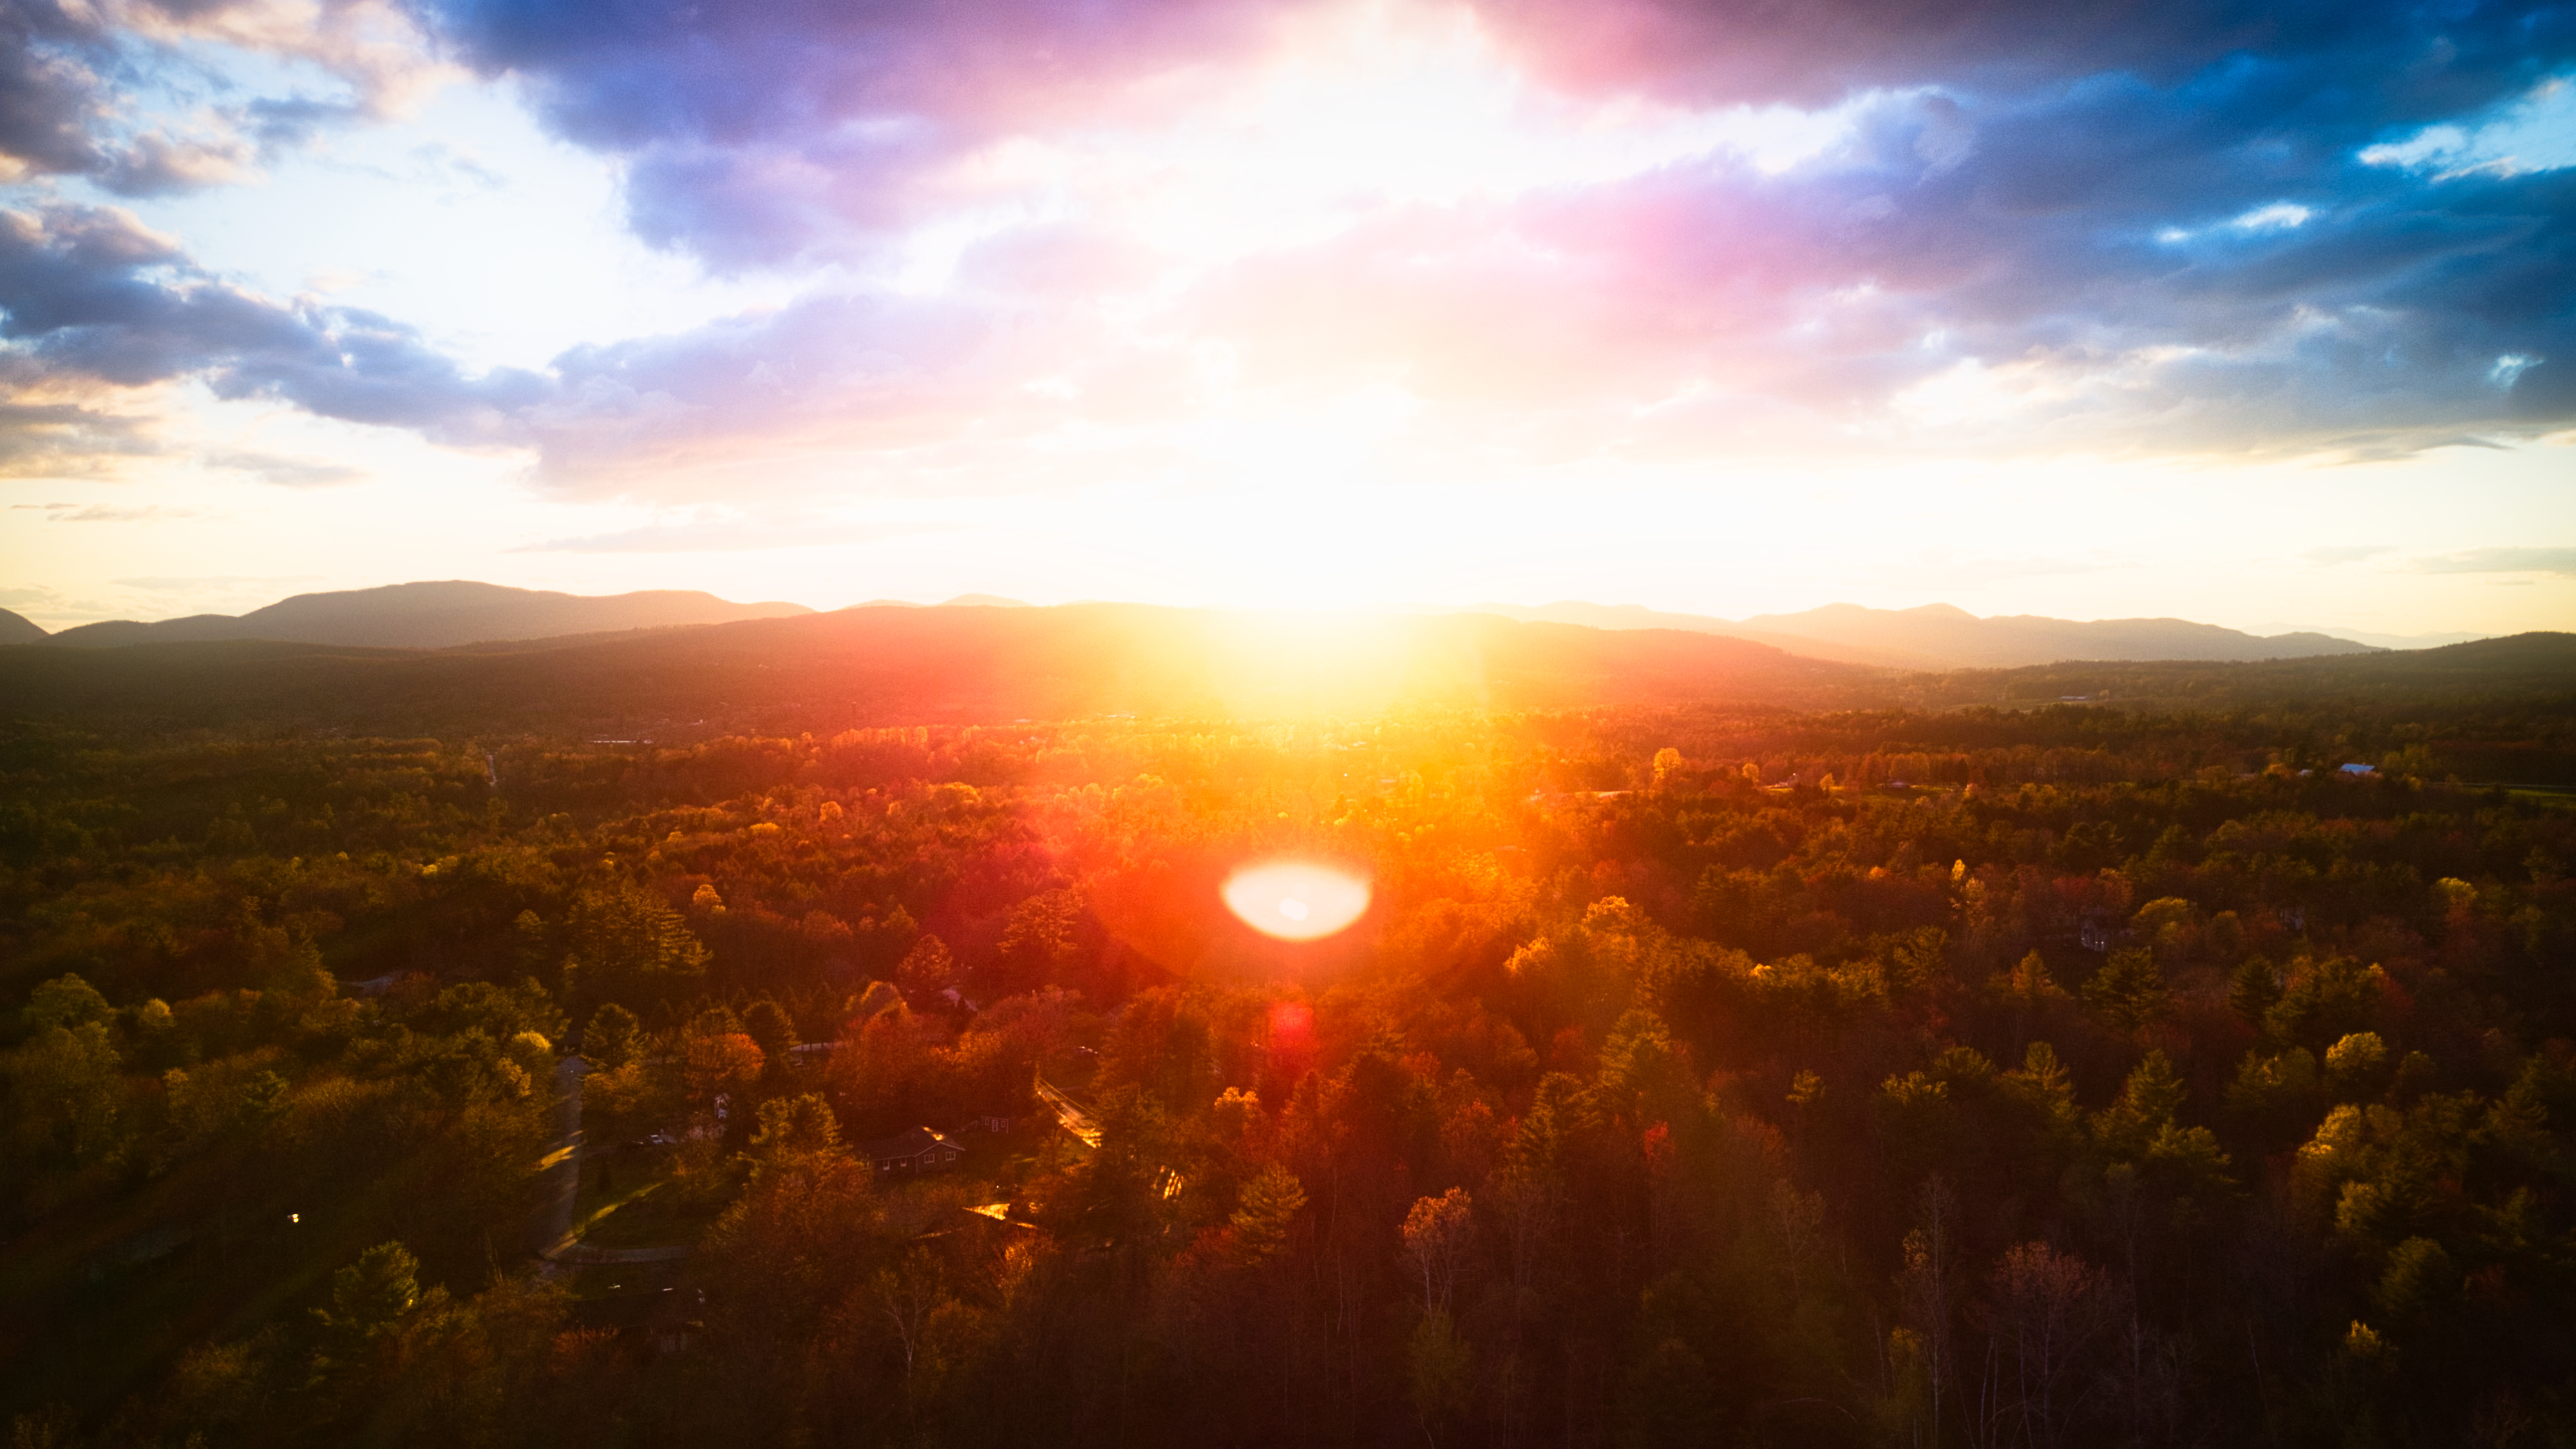 The beautiful place of #Rutland #Vermont and if you haven't visited you should during the warmer months. It's beautiful there and the outdoors were spectacular. #Drone #Mavic #Video #Photography